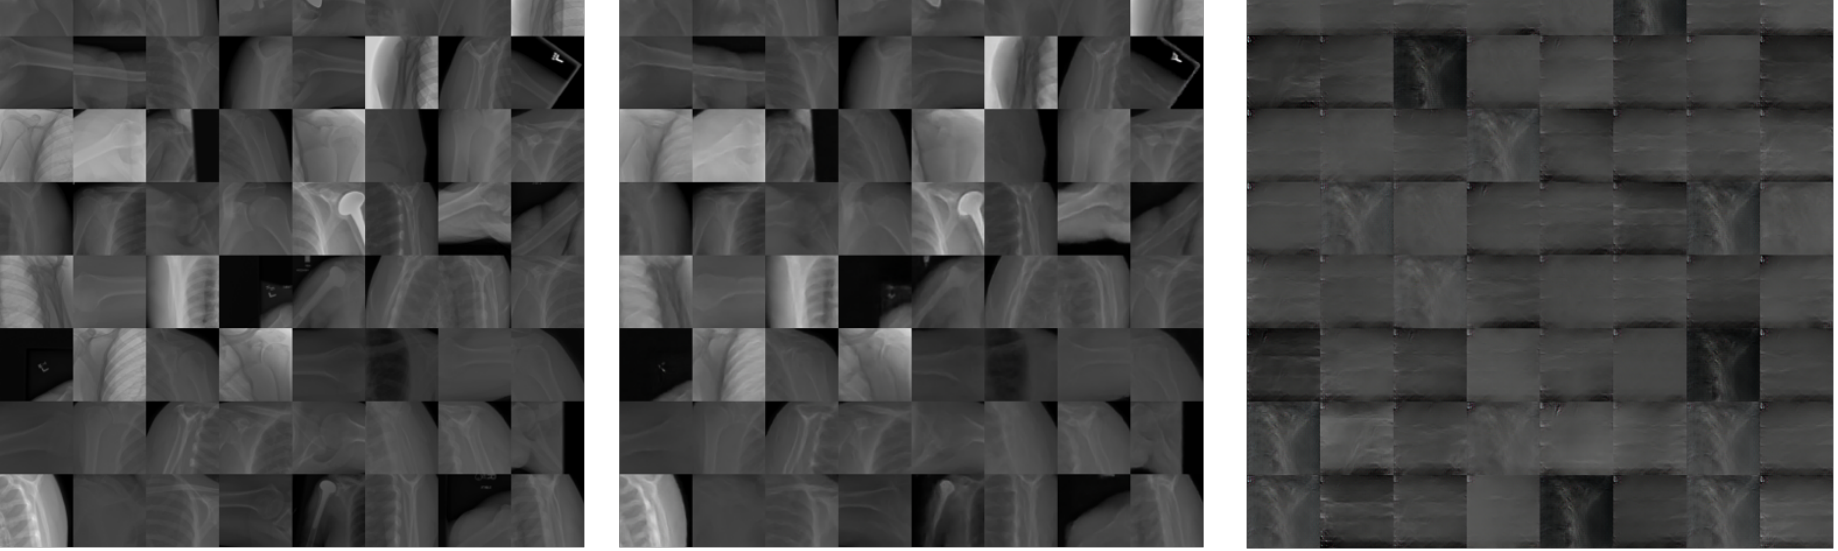 GAN for unsupervised anomaly detection on X-ray images